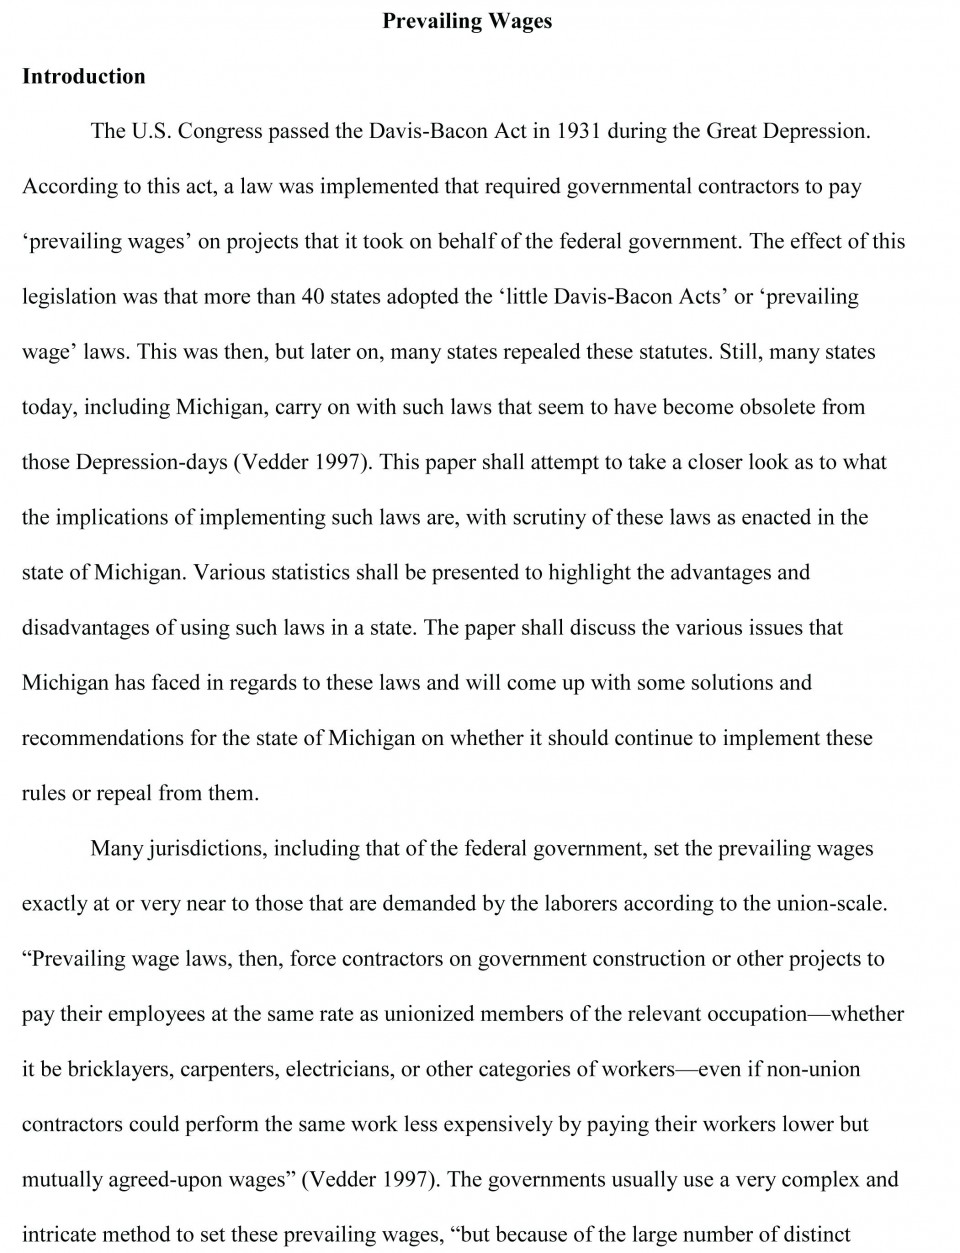 001 Essayxample Synthesisxamples Templtexmples Quickplumber Us Government And Politics Sttement Rgumenttive Sensational Synthesis Essay Outline Format Ap Lang 960